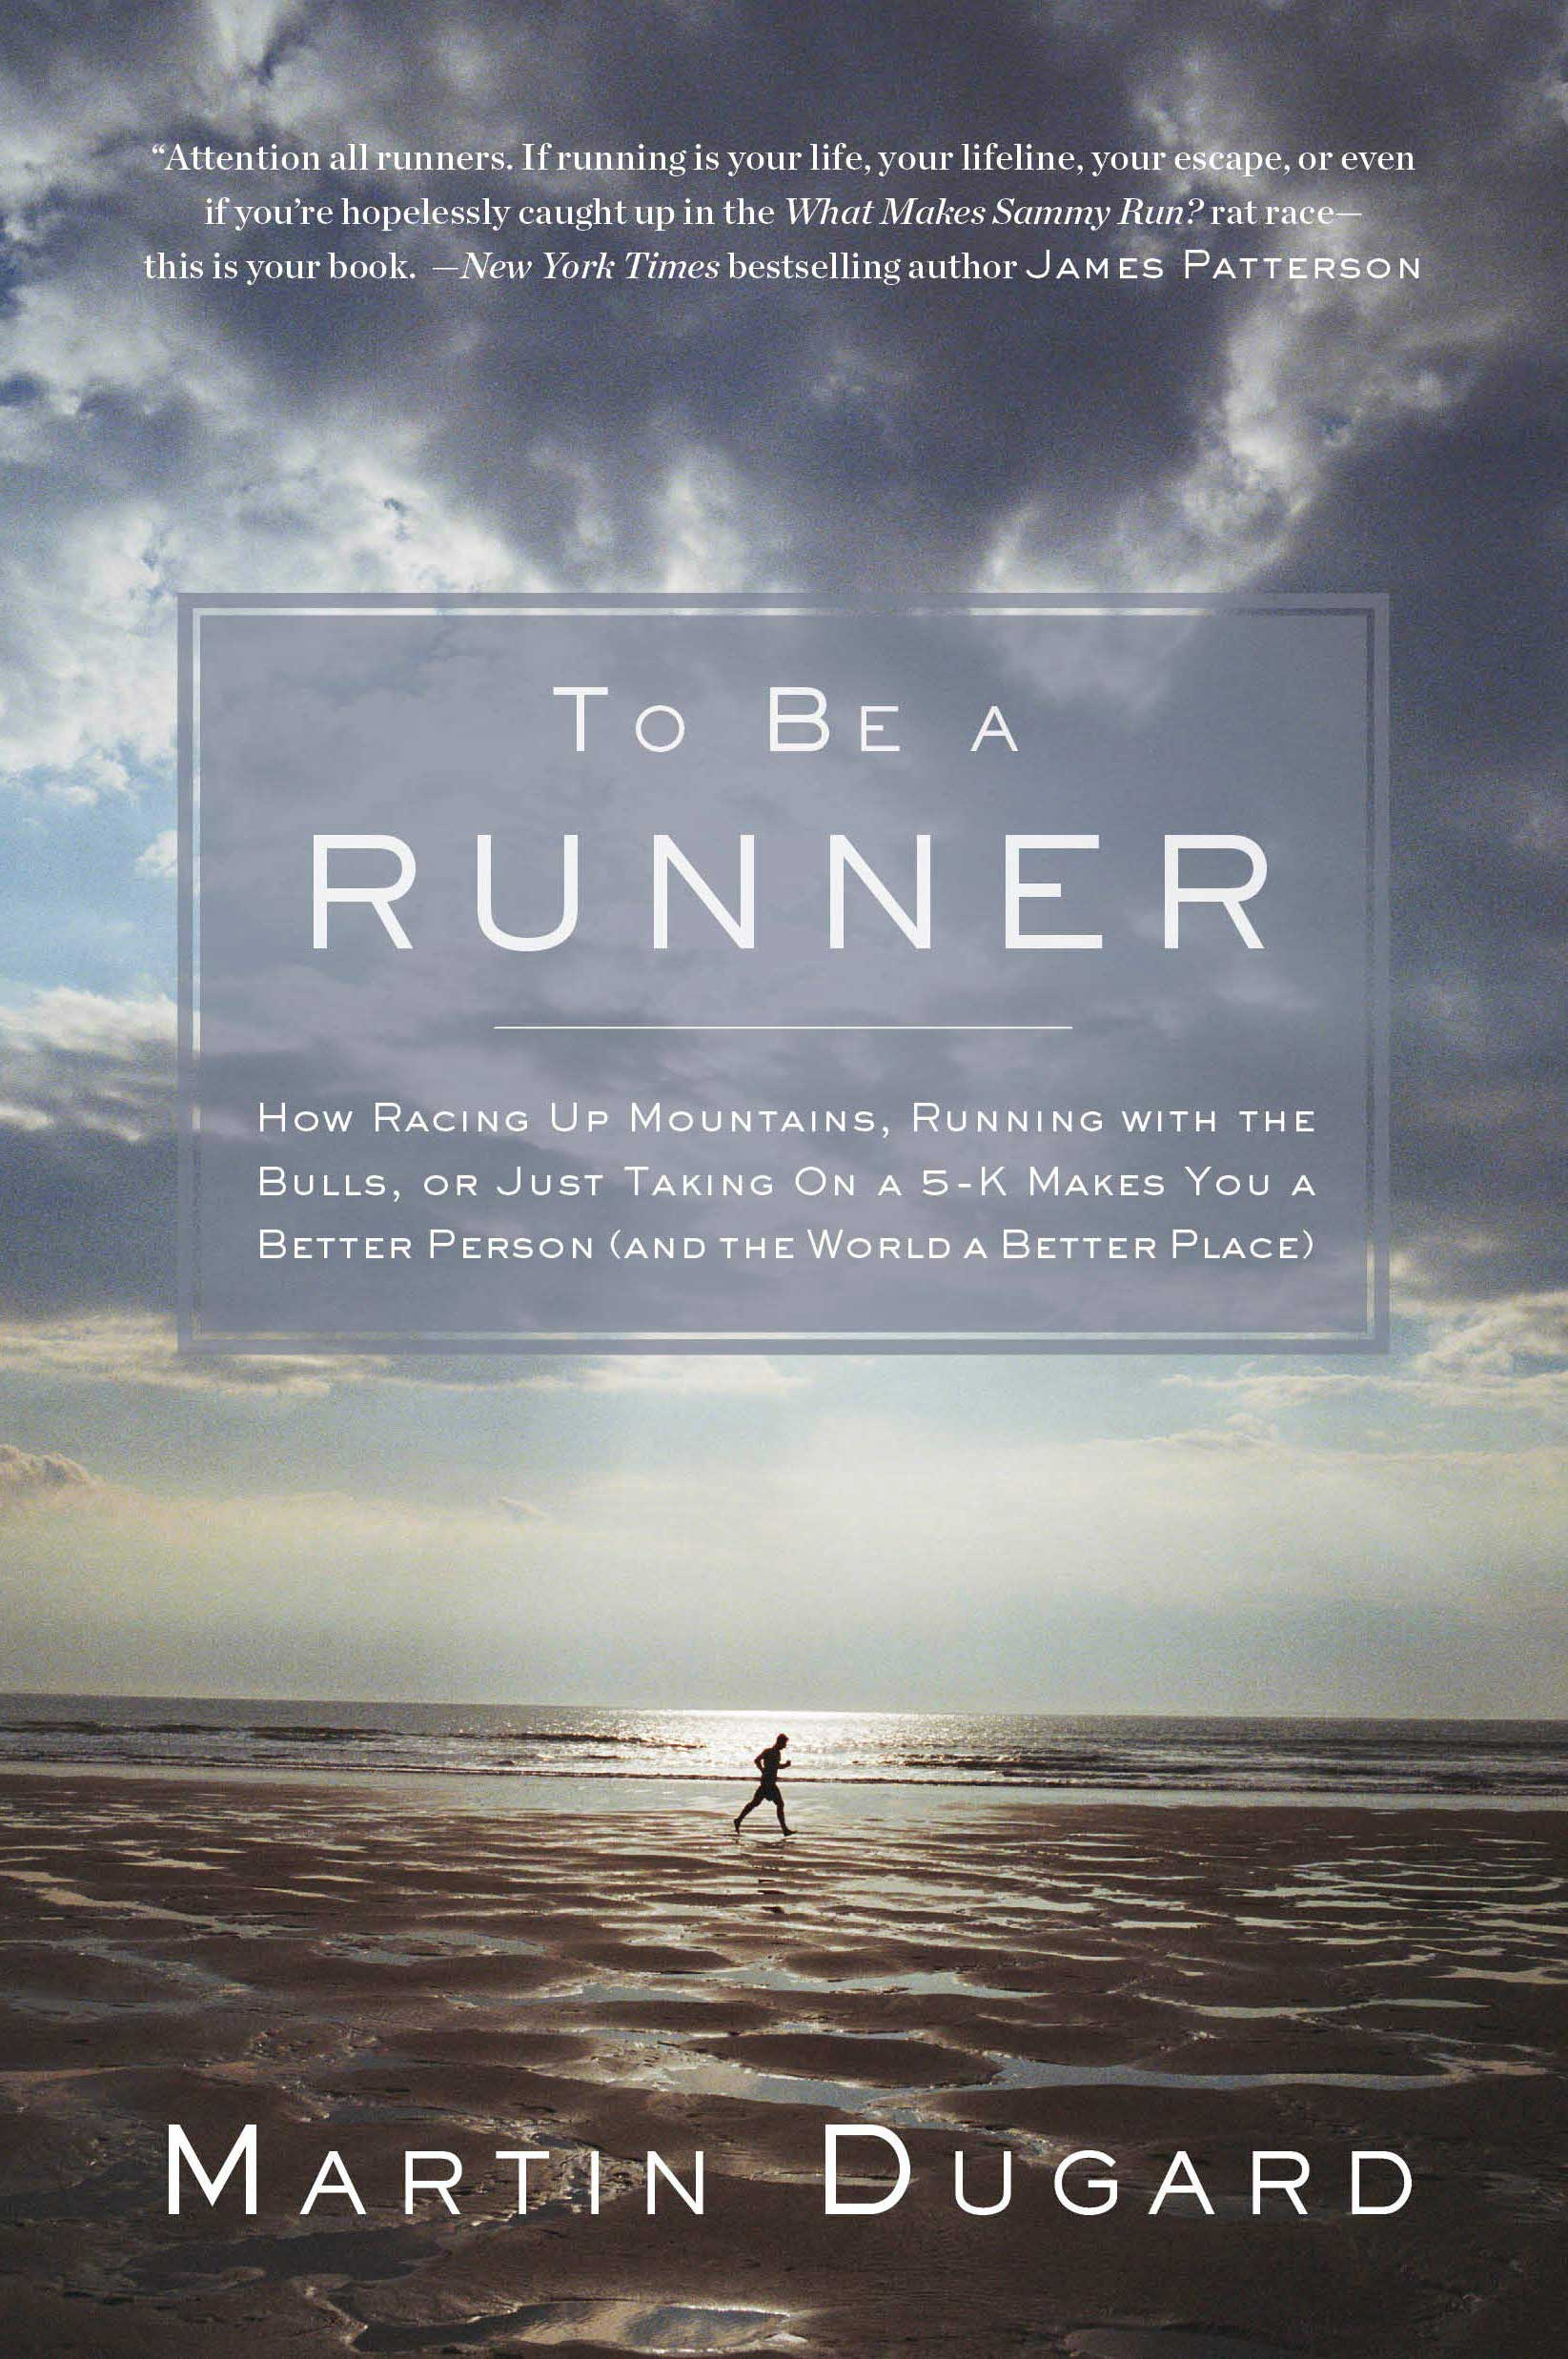 Now with a new introduction and additional stories . . . - Originally published eight years ago, To Be a Runner isb back with a fresh and exciting update on a running classic. With an exuberant mix of passion, insight, instruction, and humor, bestselling author and lifelong runner Martin Dugard takes a journey through the world of running to illustrate how the sport helps us fulfill that universal desire to be the best possible version of ourselves each and every time we lace up our shoes.    To Be a Runner represents a new way to write about running by bridging the chasm between the two categories of running books: how-to and personal narrative. Spinning colorful stories of his running and racing adventures on six continents, Dugard considers what it means to truly integrate running into one's life. As entertaining as it is provocative, To Be a Runner is about far more than running: It is about life, and how we should live it.